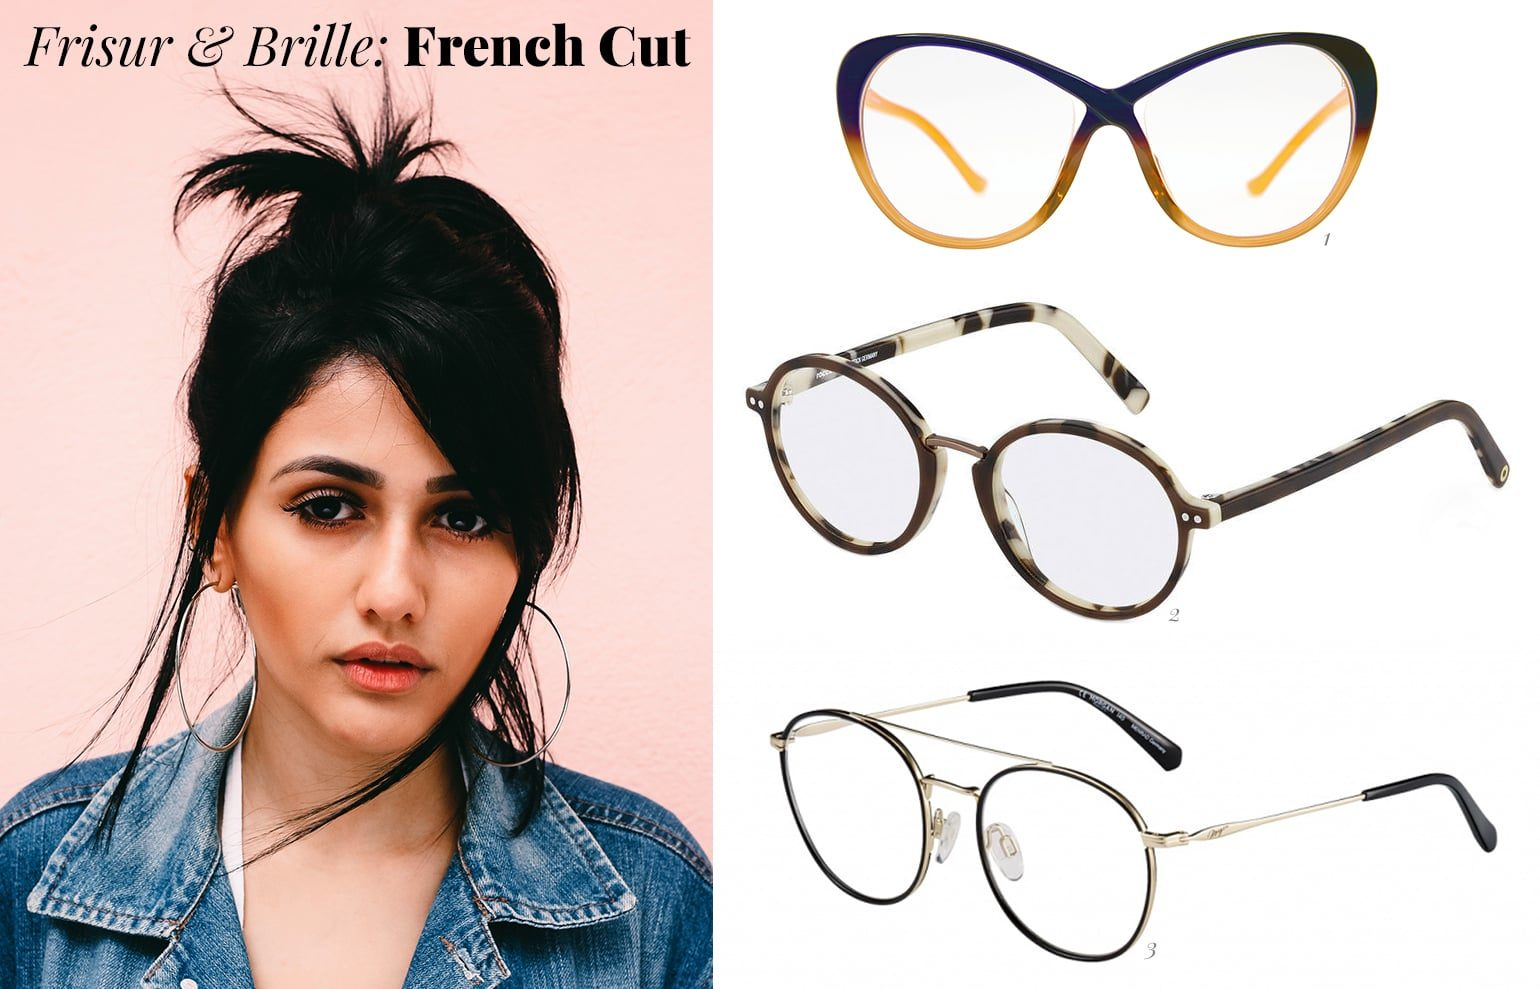 French Cut und Brille